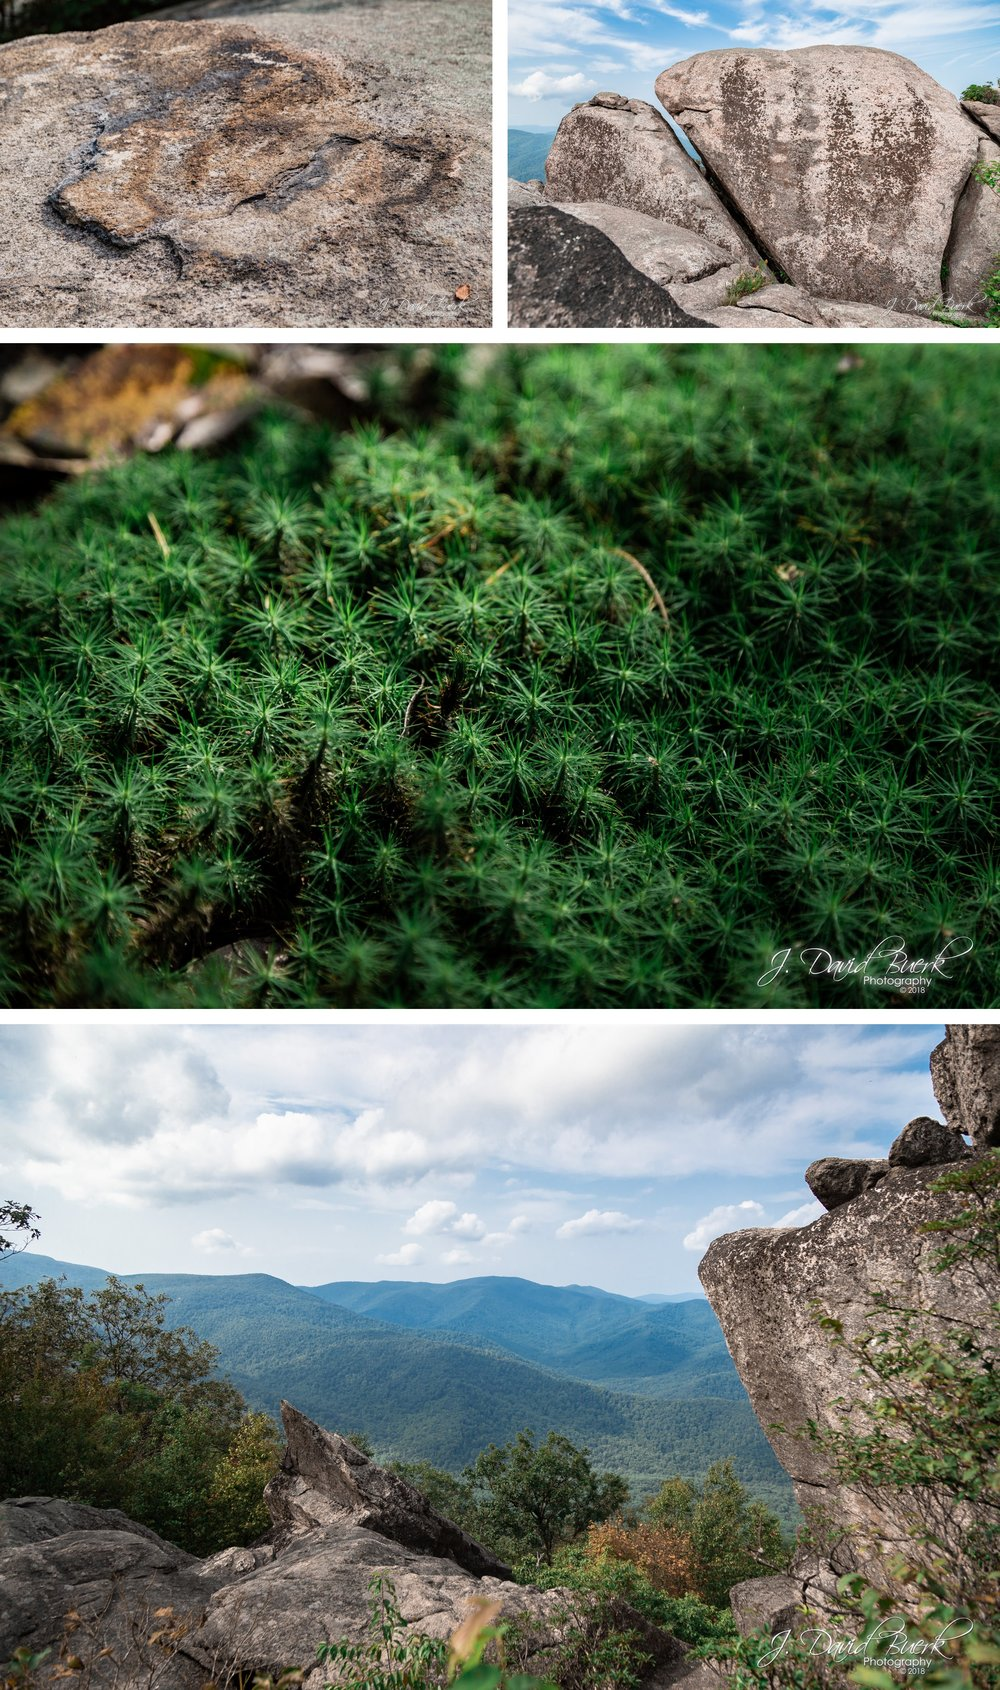 20180826 - Old Rag Mountain August 2018 10.jpg